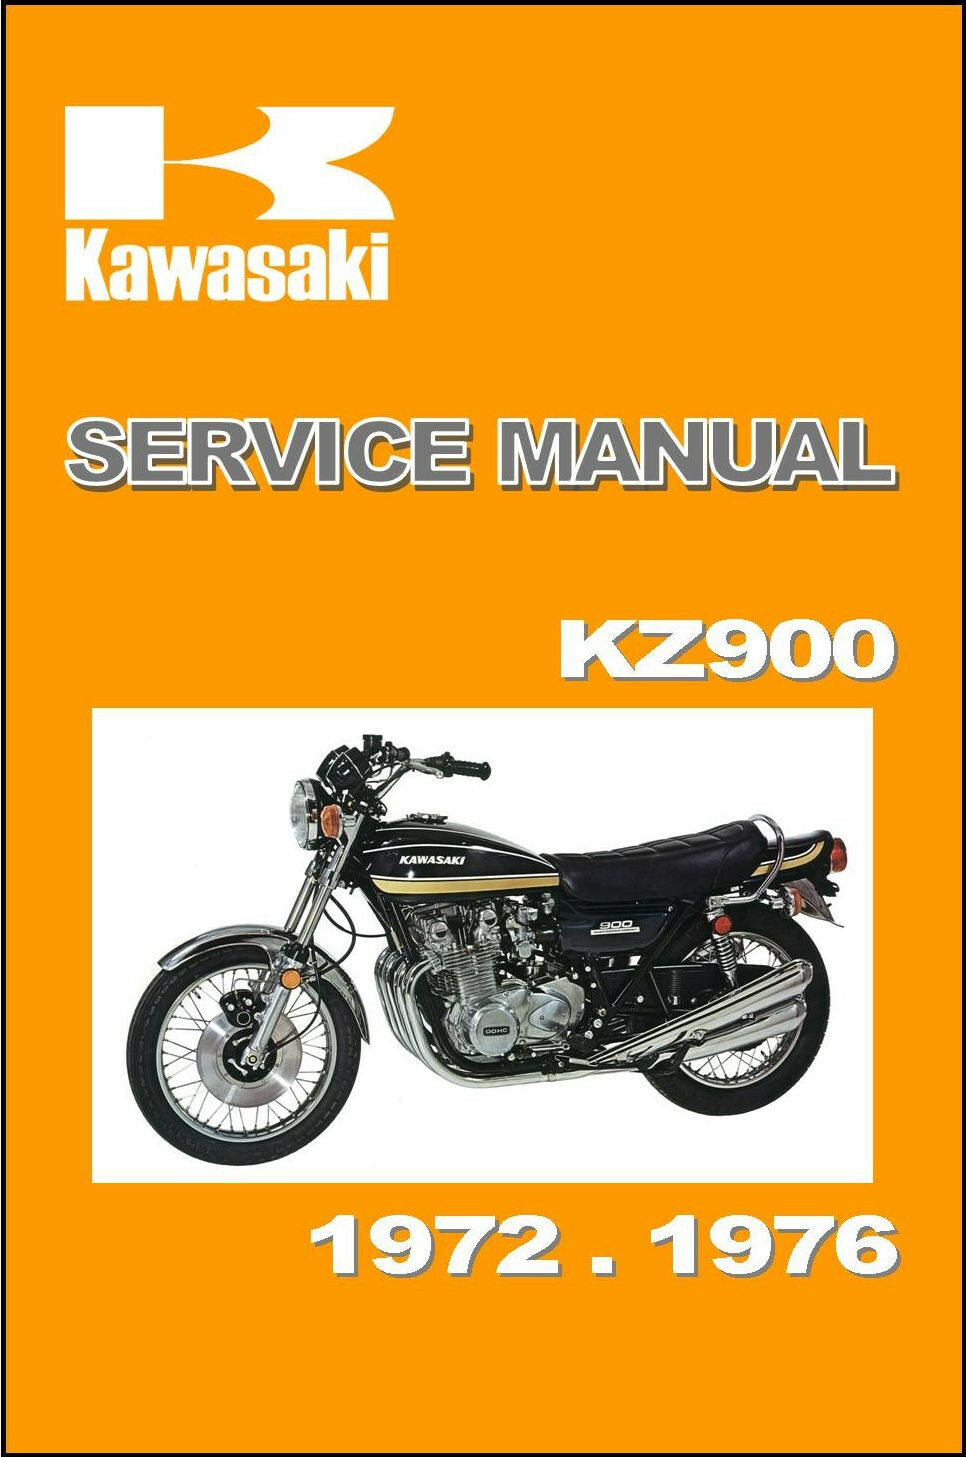 KAWASAKI Workshop Manual Z1 Z1A Z1B Z900 KZ900 1972 1973 1974 1975 1976  SERVICE 1 of 6 See More